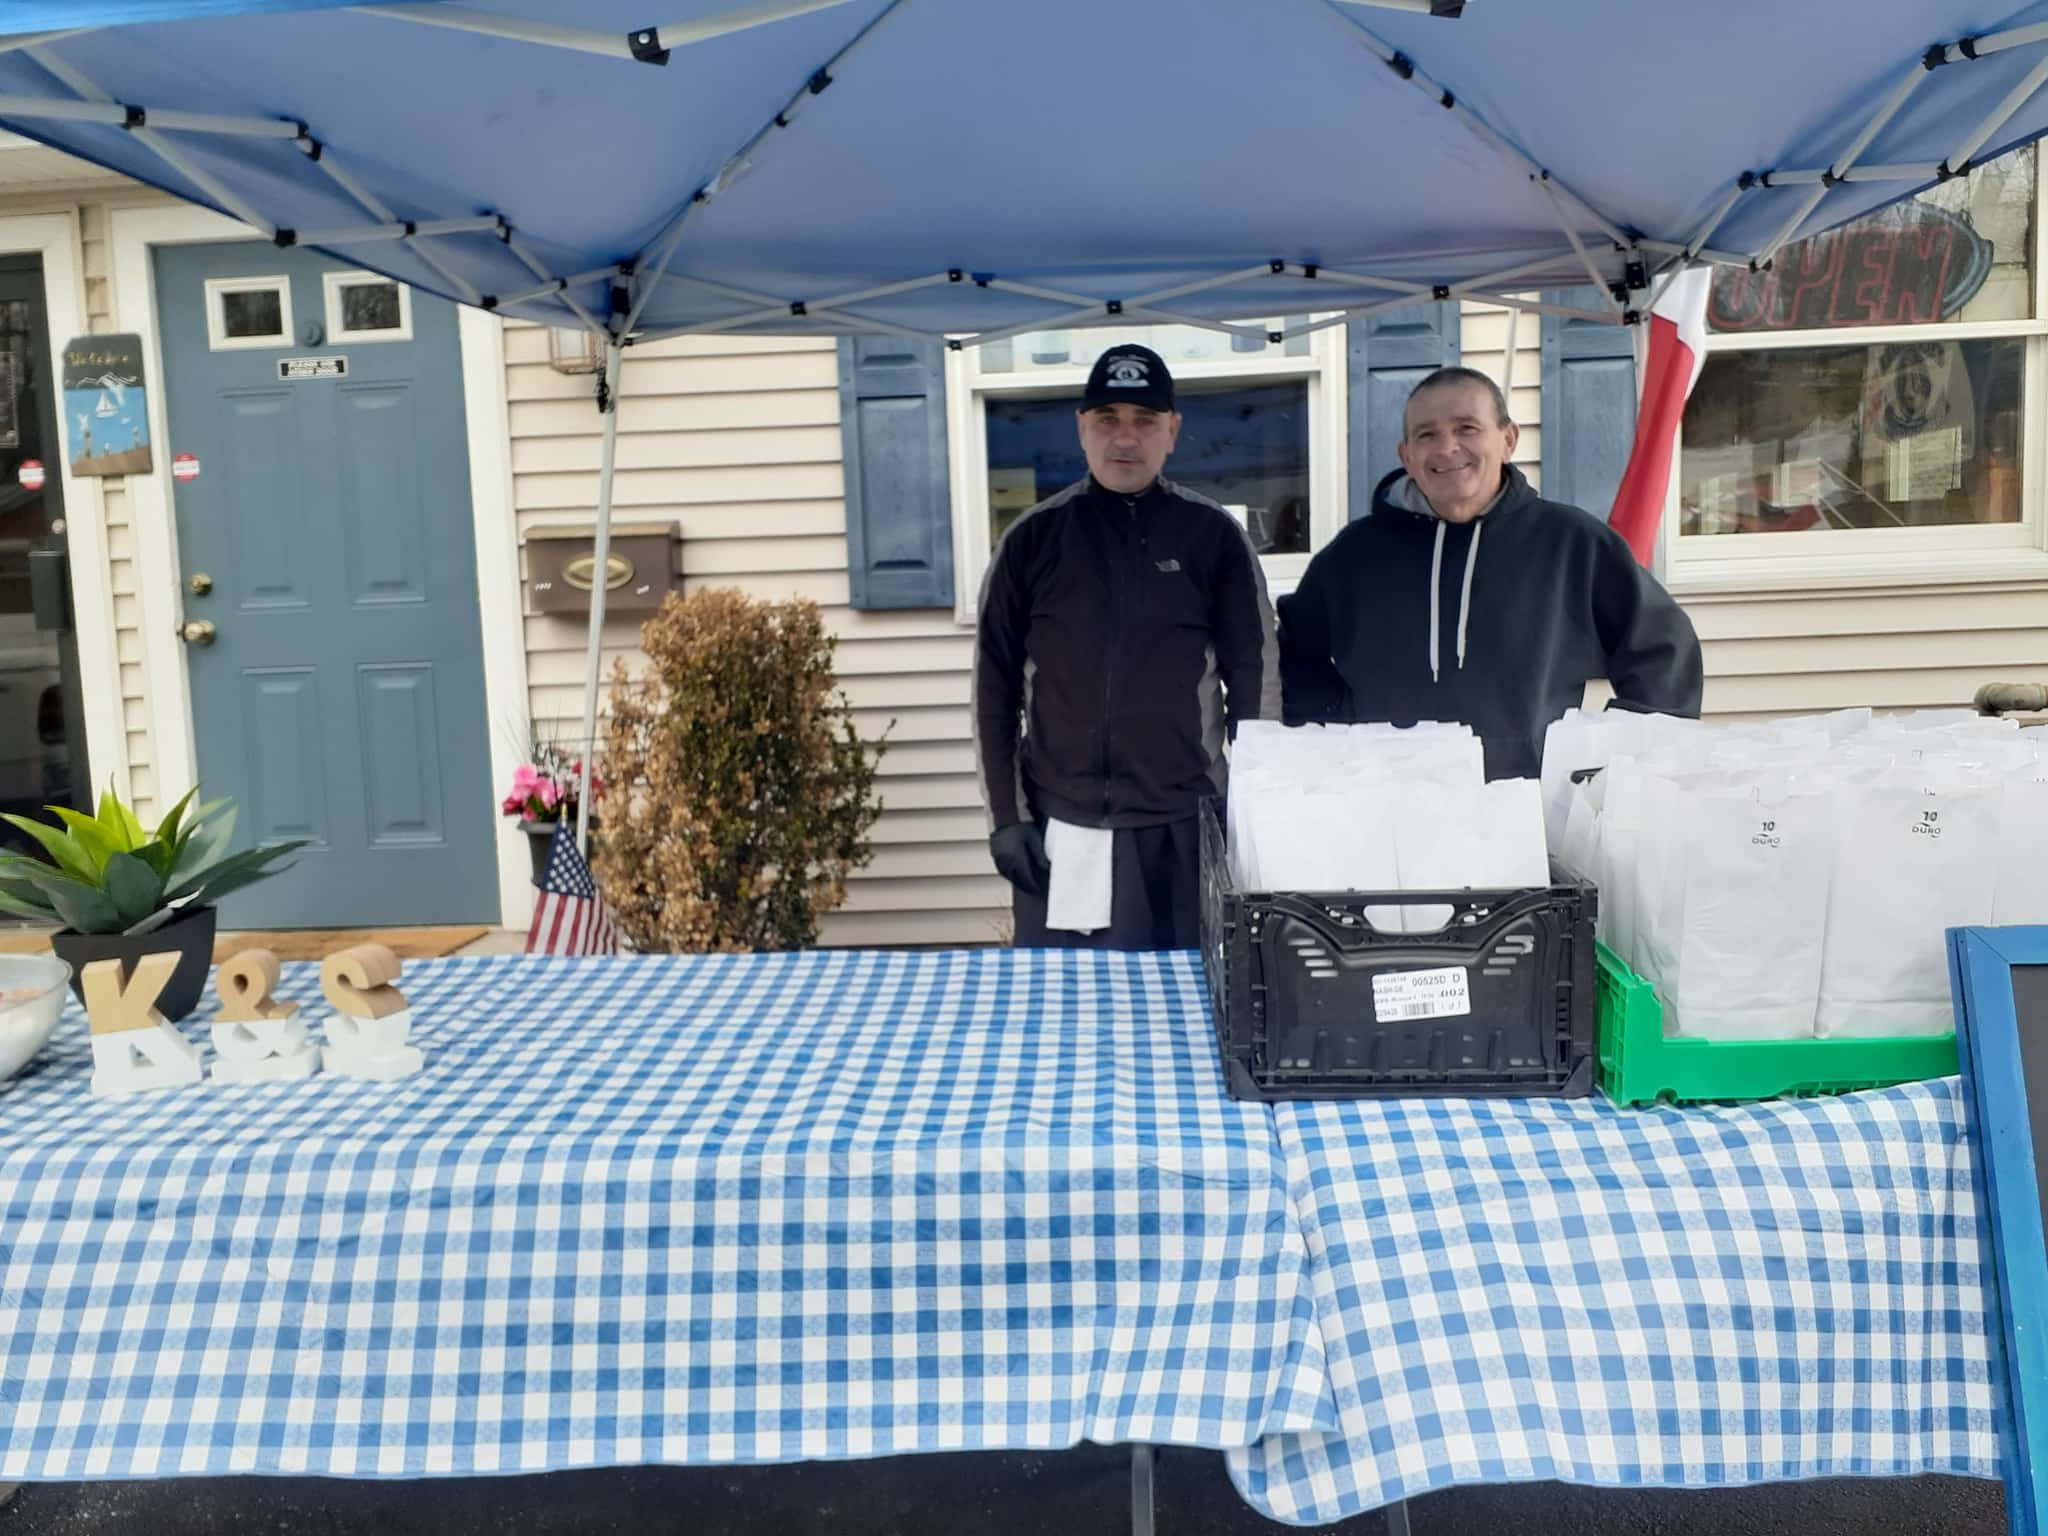 [COURTESY PHOTO] Kim-&-Steve's-Masthead-Grill is giving free take-out lunches to shut-in families during the COVID-19 outbreak. Restaurant employees, from left, Chuckie and Gary, were handing out the lunches Monday.